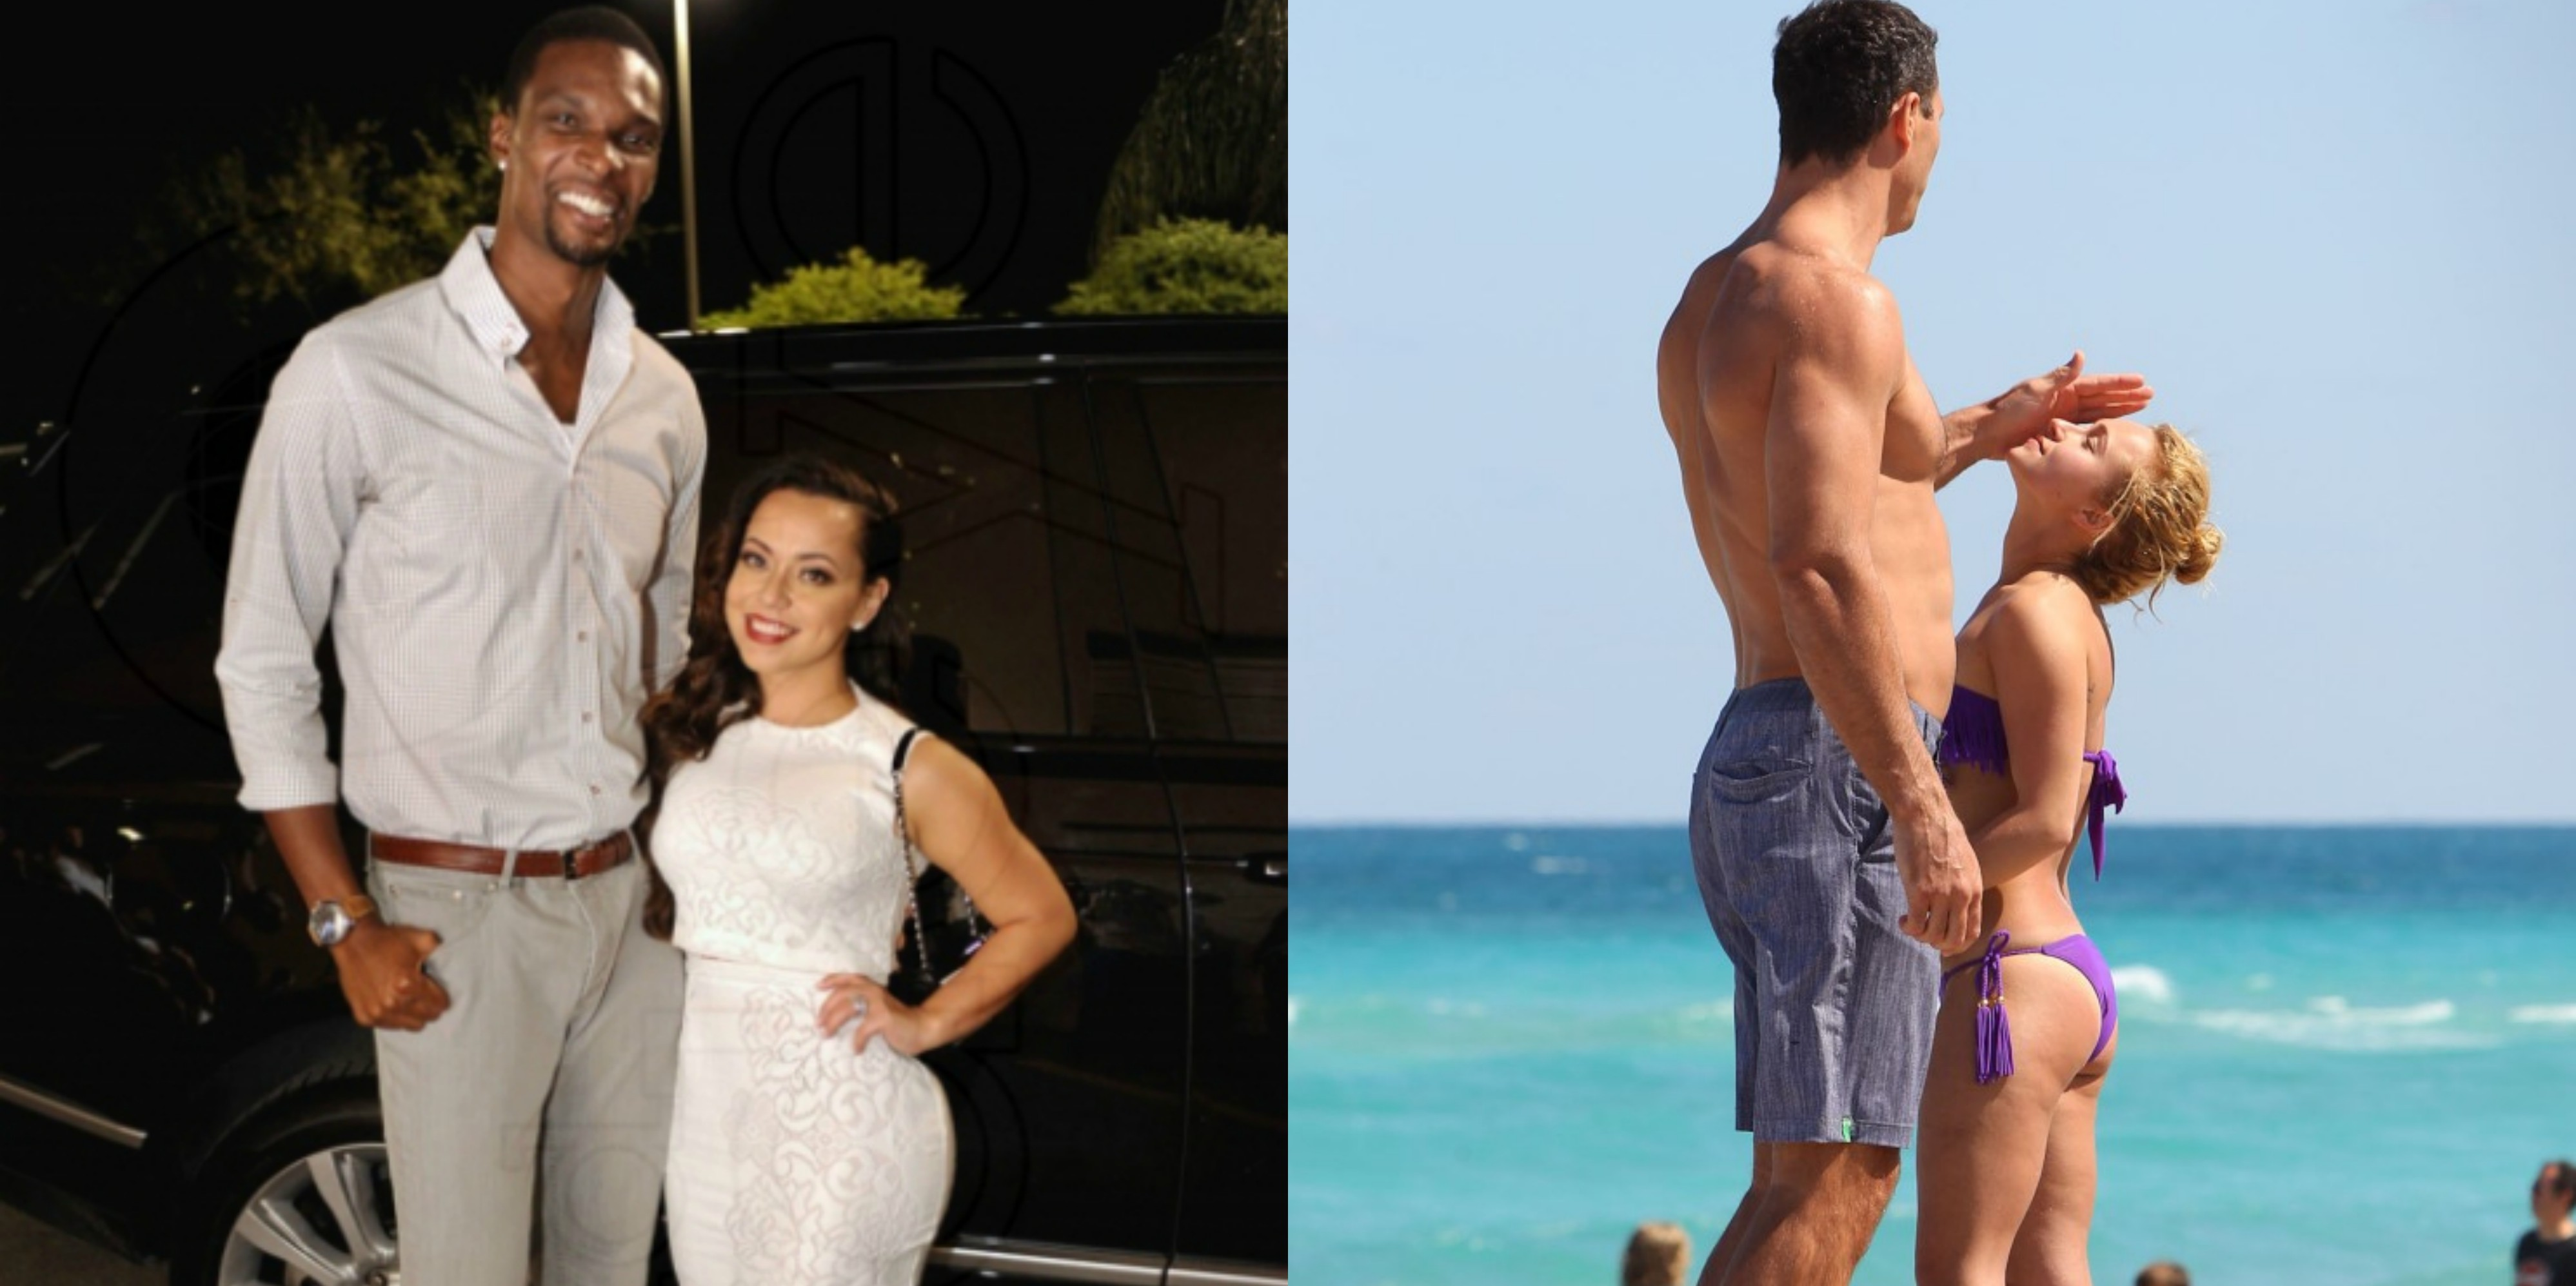 15 Athletes Who Married Hotties Half Their Size